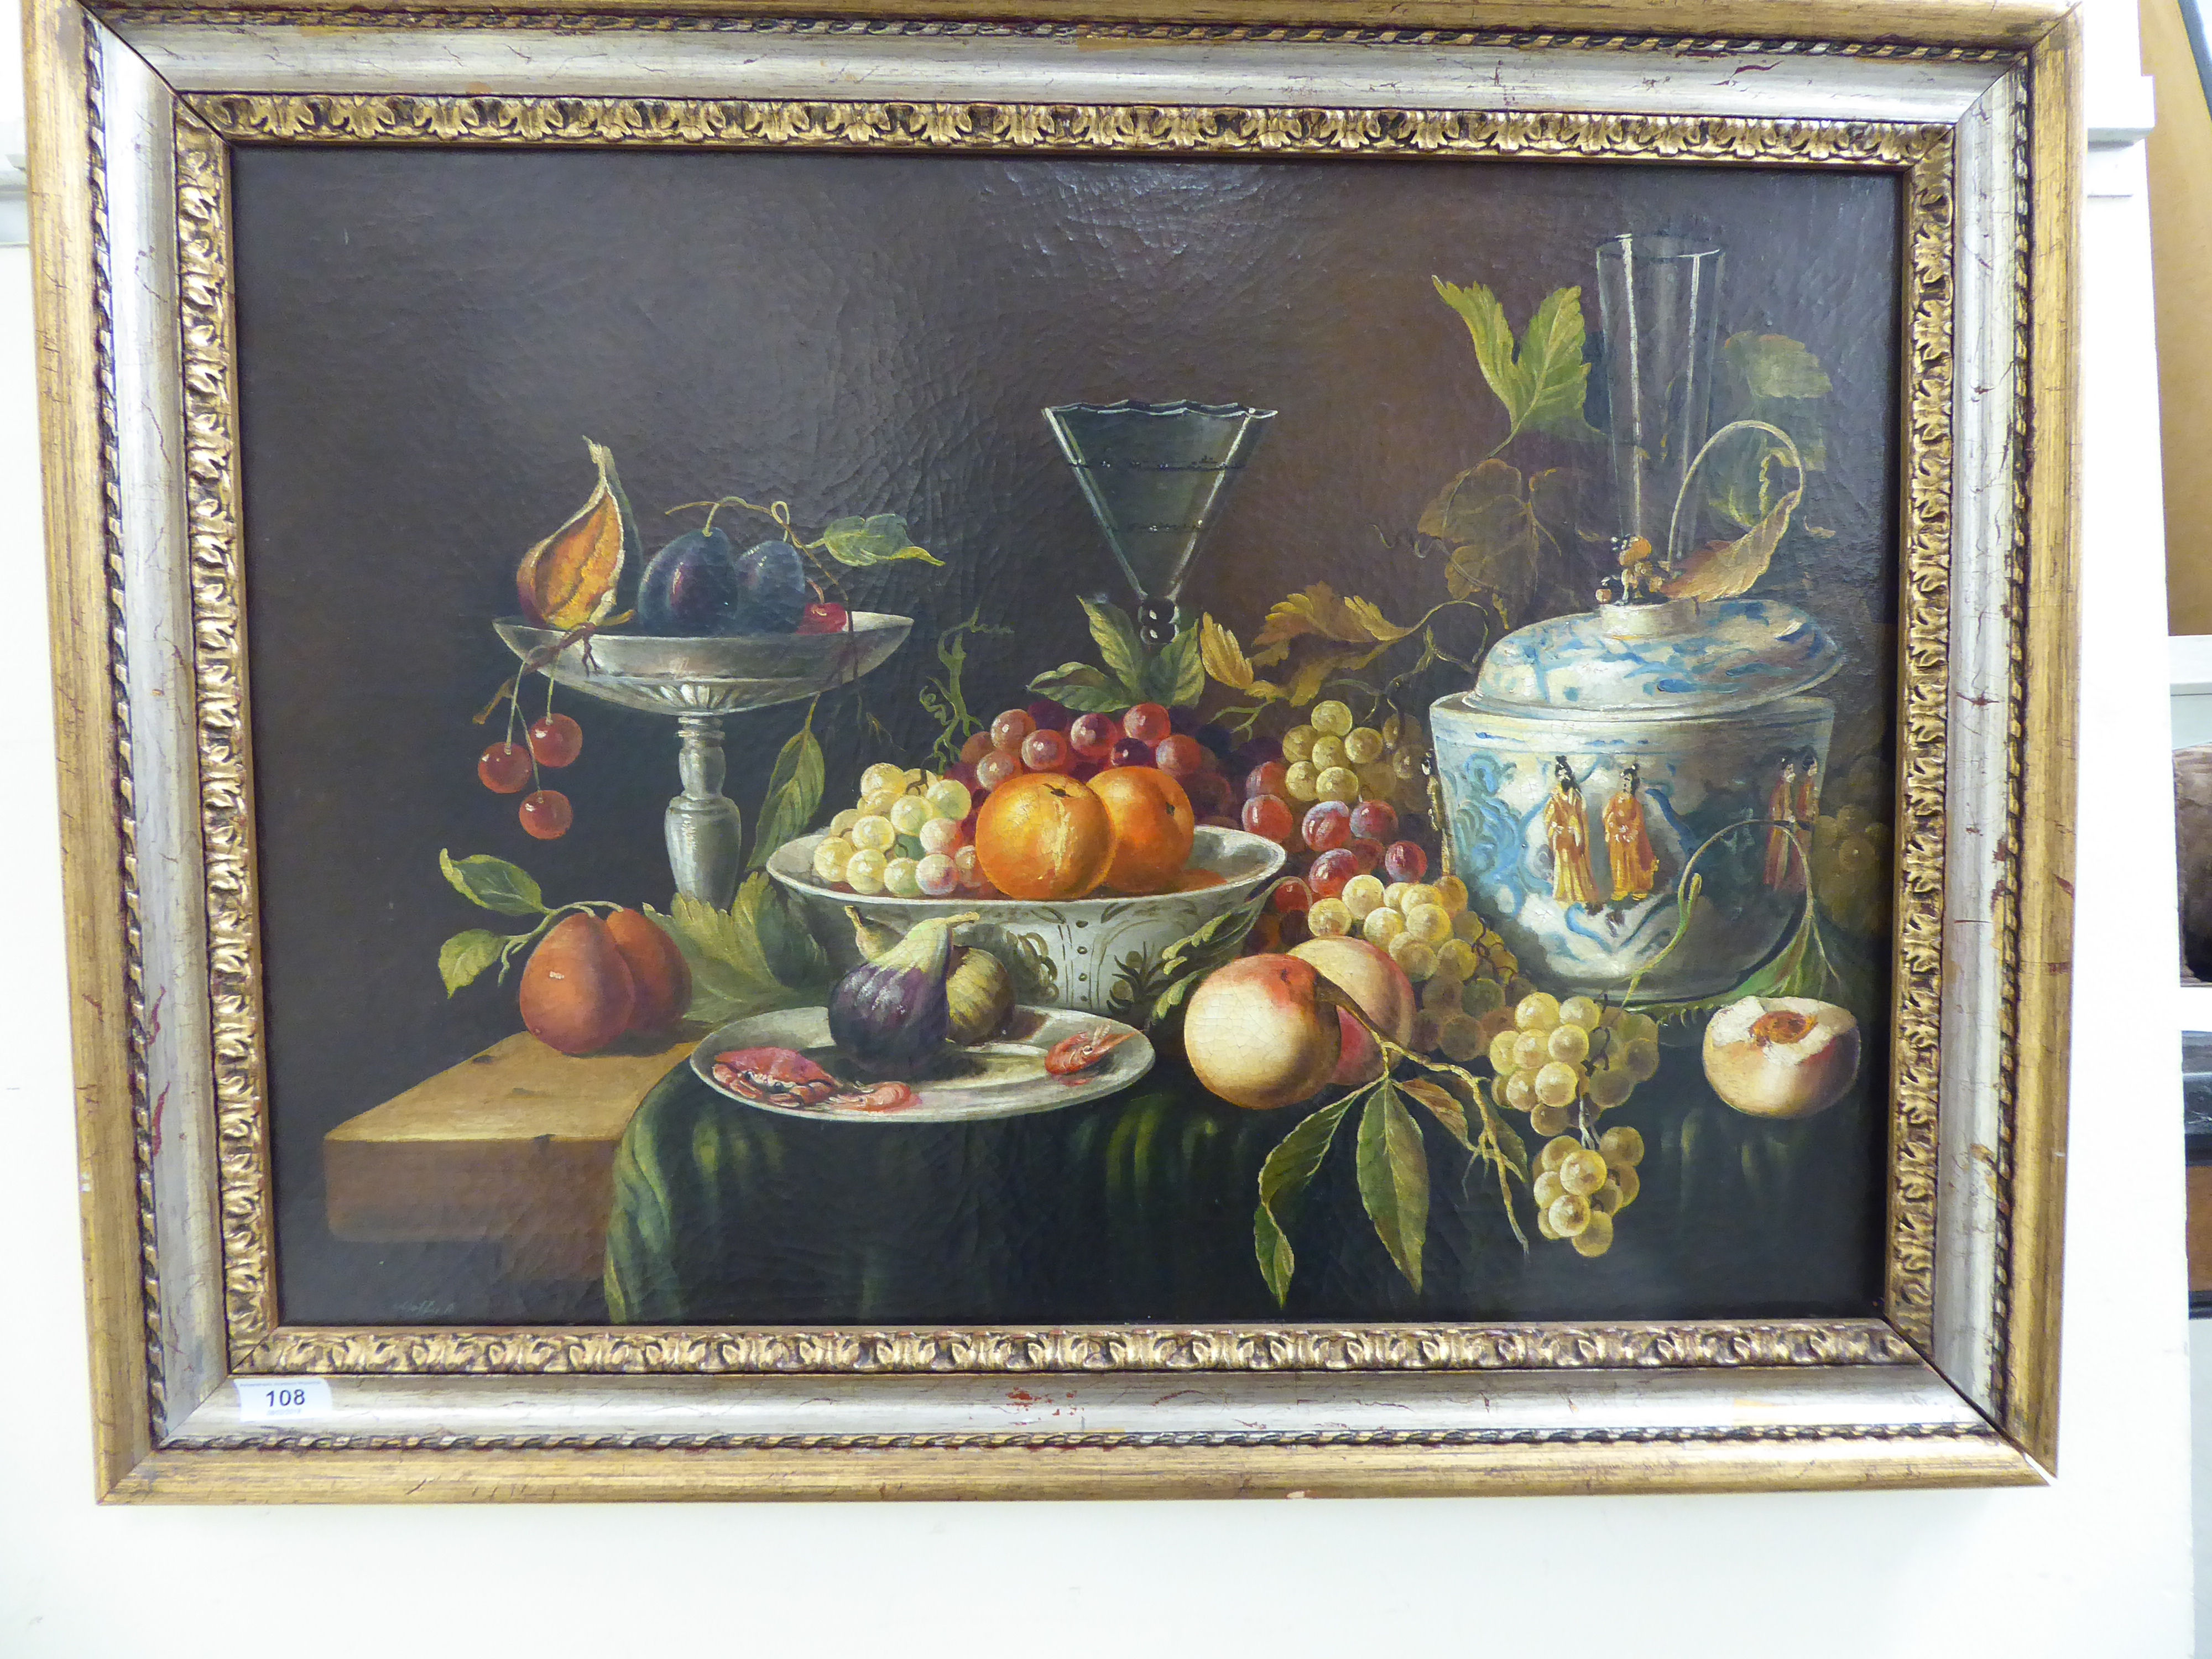 Lot 108 - 17thC style Dutch School - a still life study of Chinese porcelain bowls containing grapes, peaches,